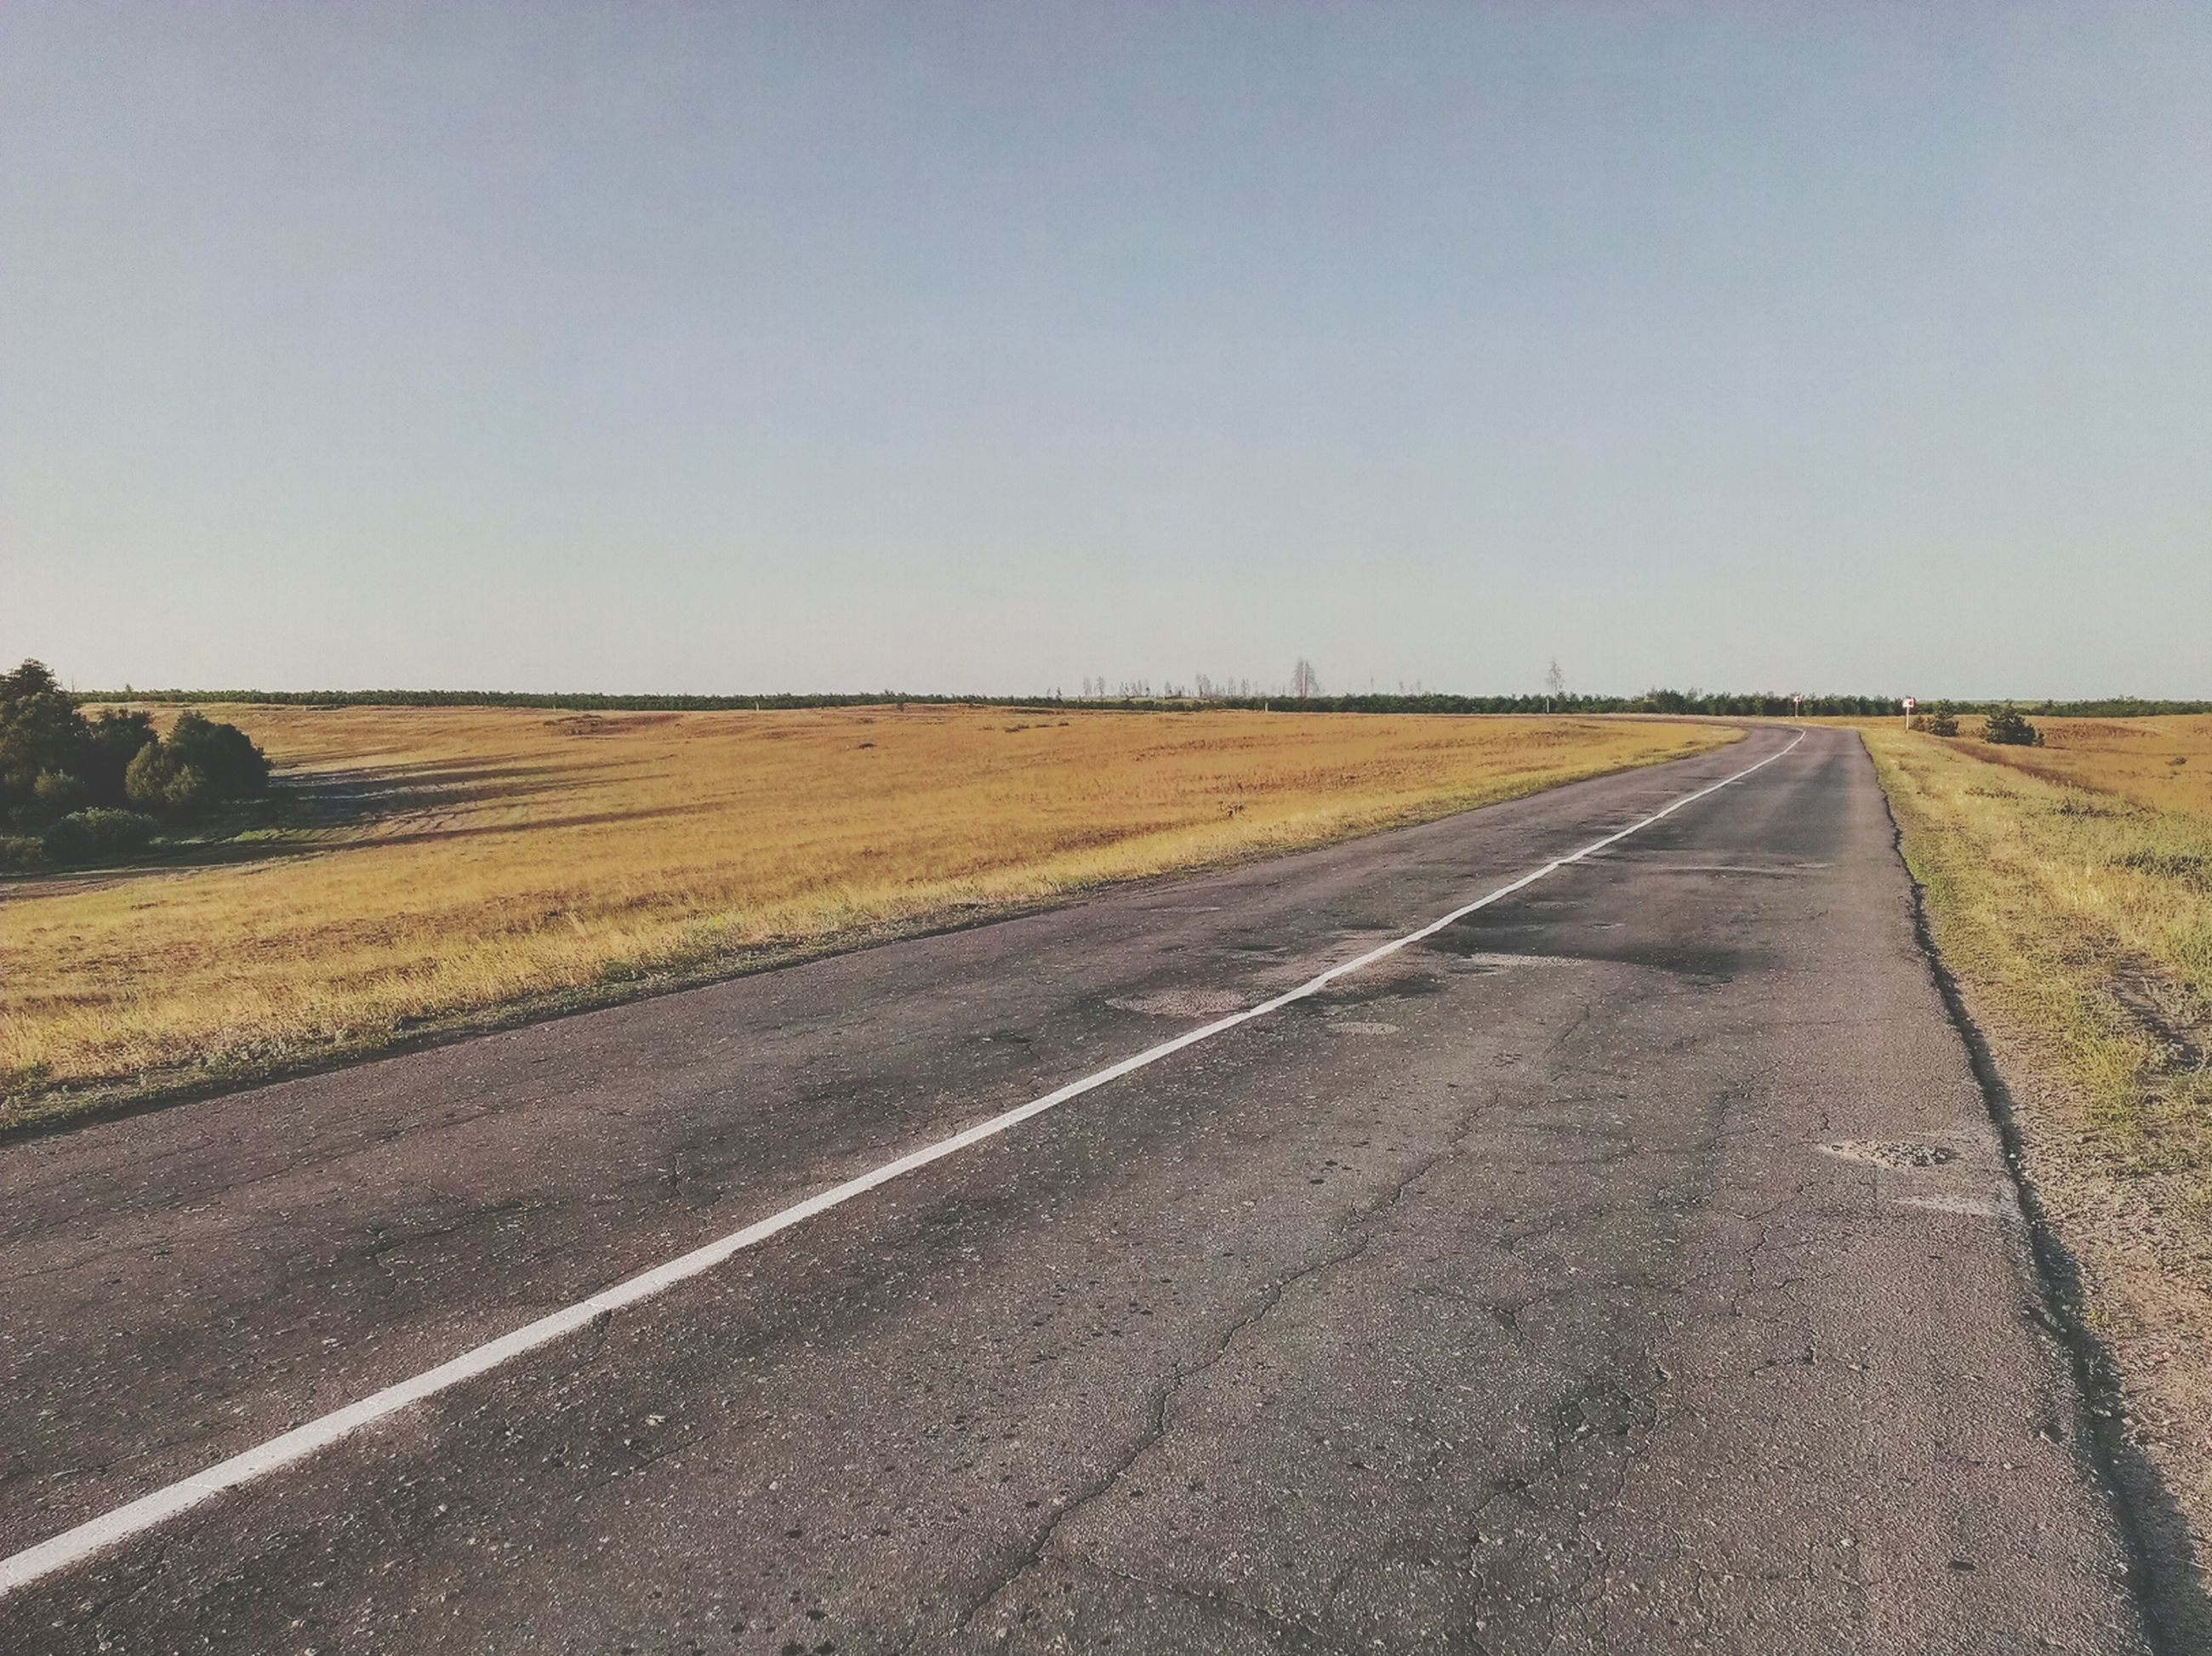 the way forward, transportation, road, clear sky, diminishing perspective, vanishing point, copy space, road marking, landscape, country road, tranquil scene, tranquility, empty, long, field, empty road, sky, asphalt, nature, horizon over land